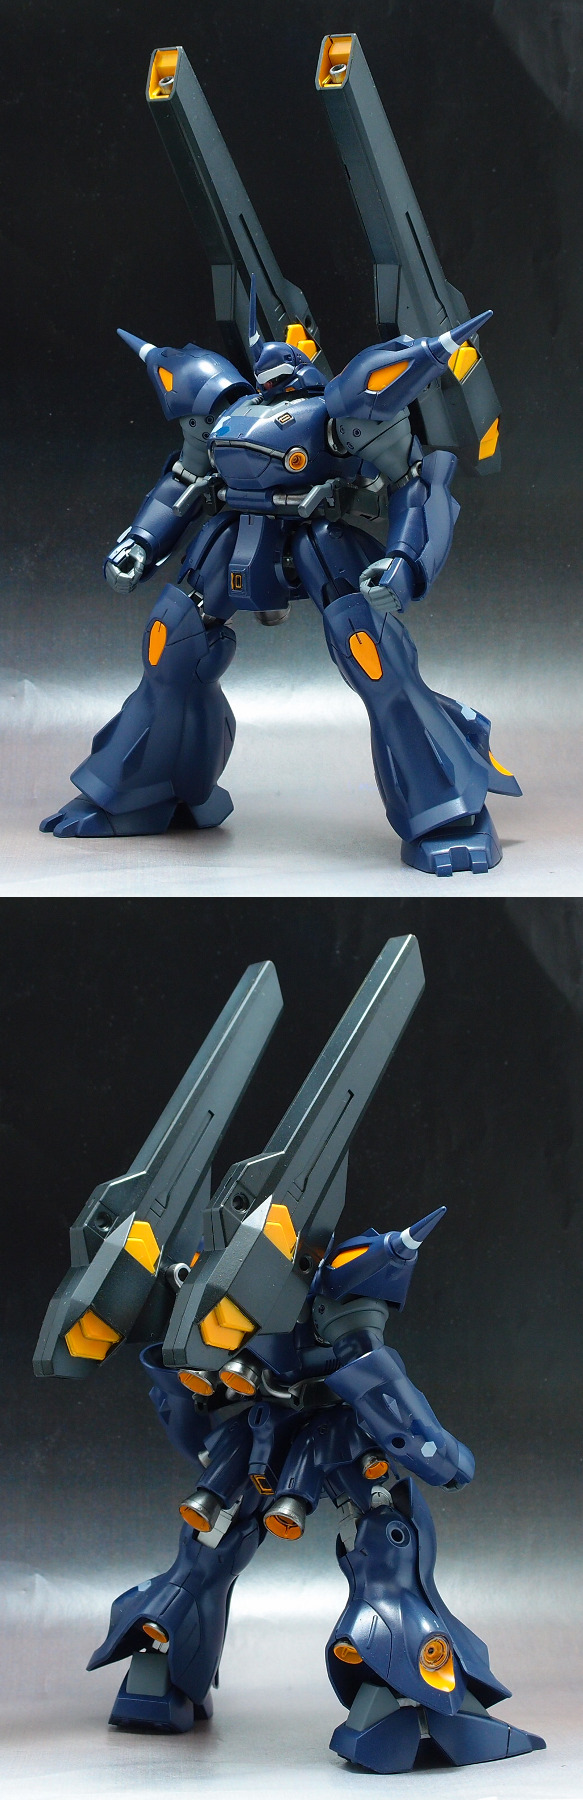 hgbf_kampfer_amazing.jpg